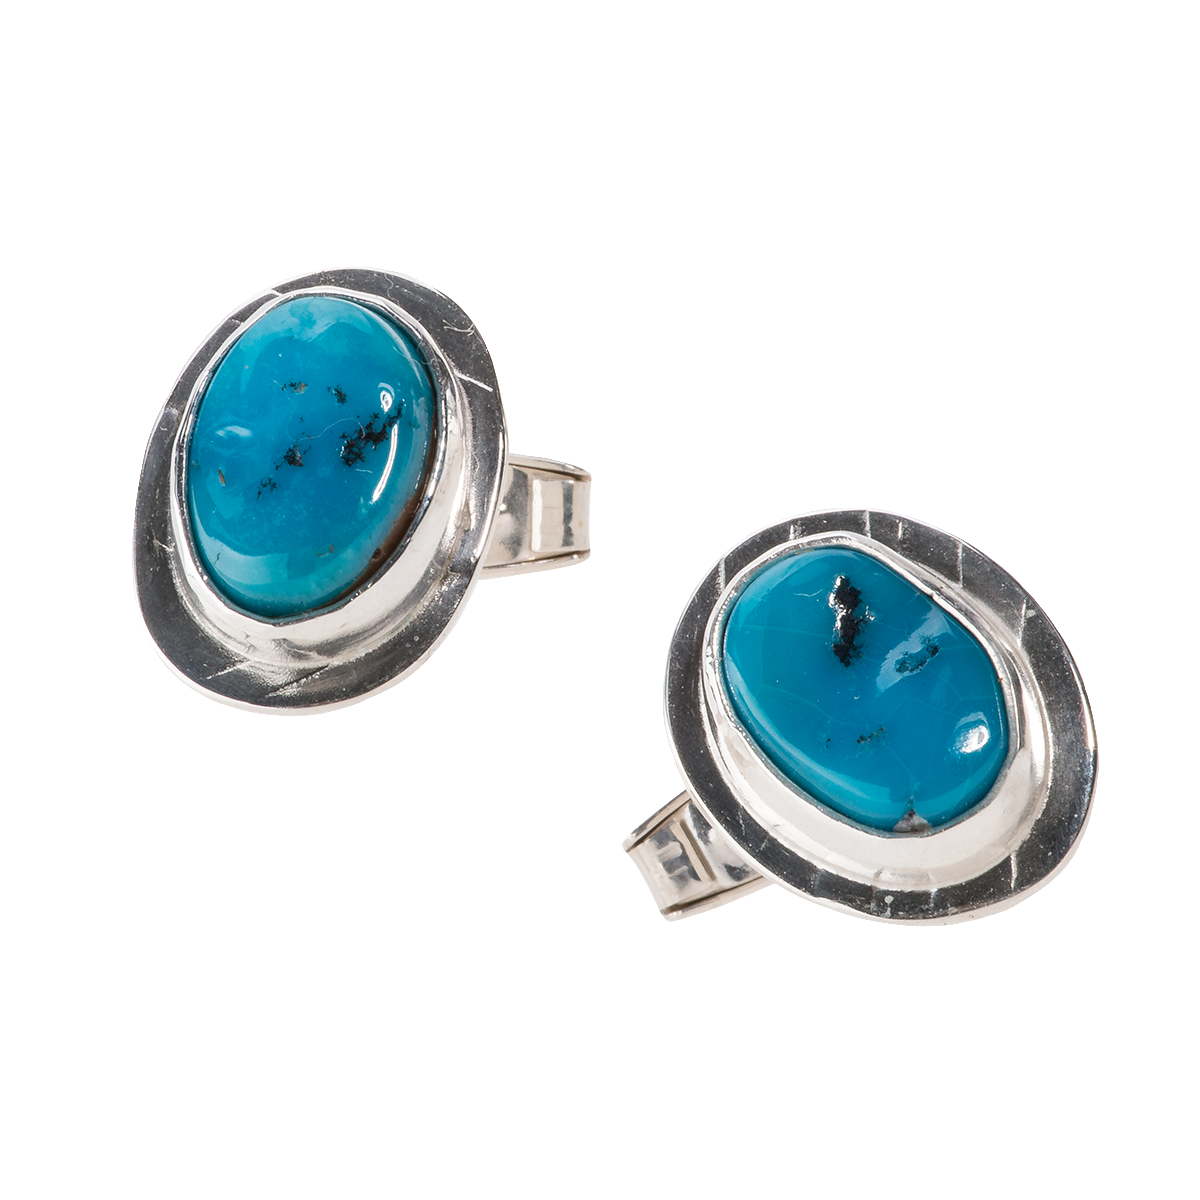 Kingman Turquoise and Silver Cufflinks - 9.png